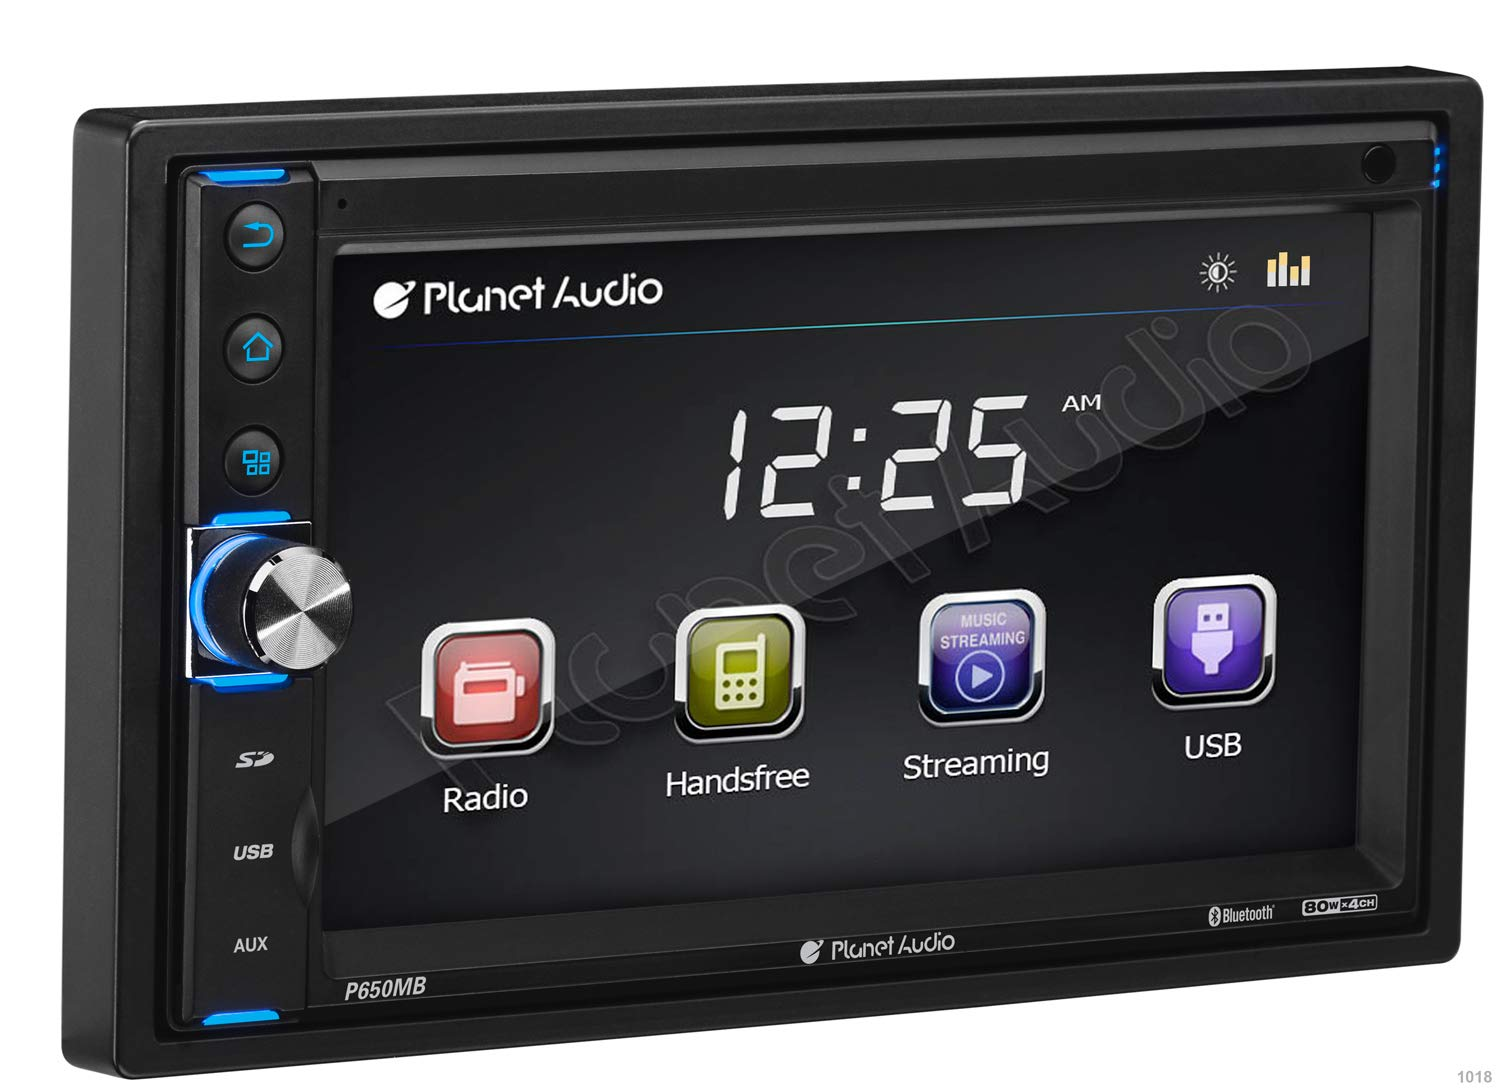 Amazon.com: Planet Audio P650MB Multimedia Car Stereo – Double Din, Bluetooth Audio and Hands-Free Calling, MP3 Player, USB/SD Ports, AUX Input, AM/FM Radio ...